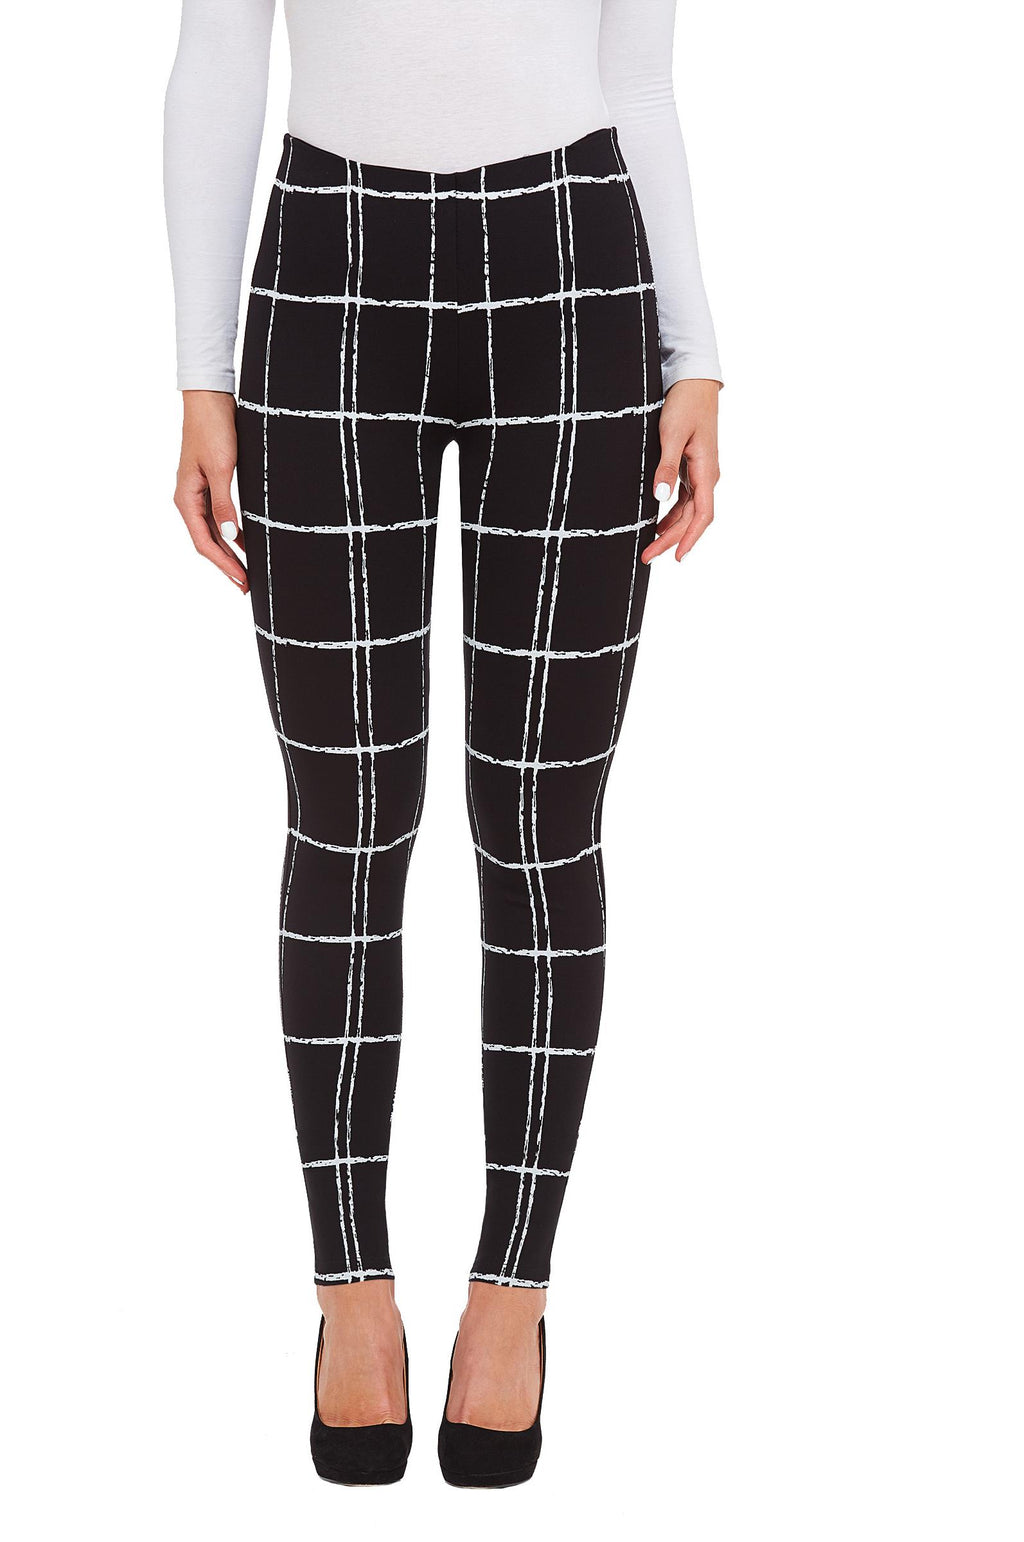 ABSTRACT PLAID LEGGINGS